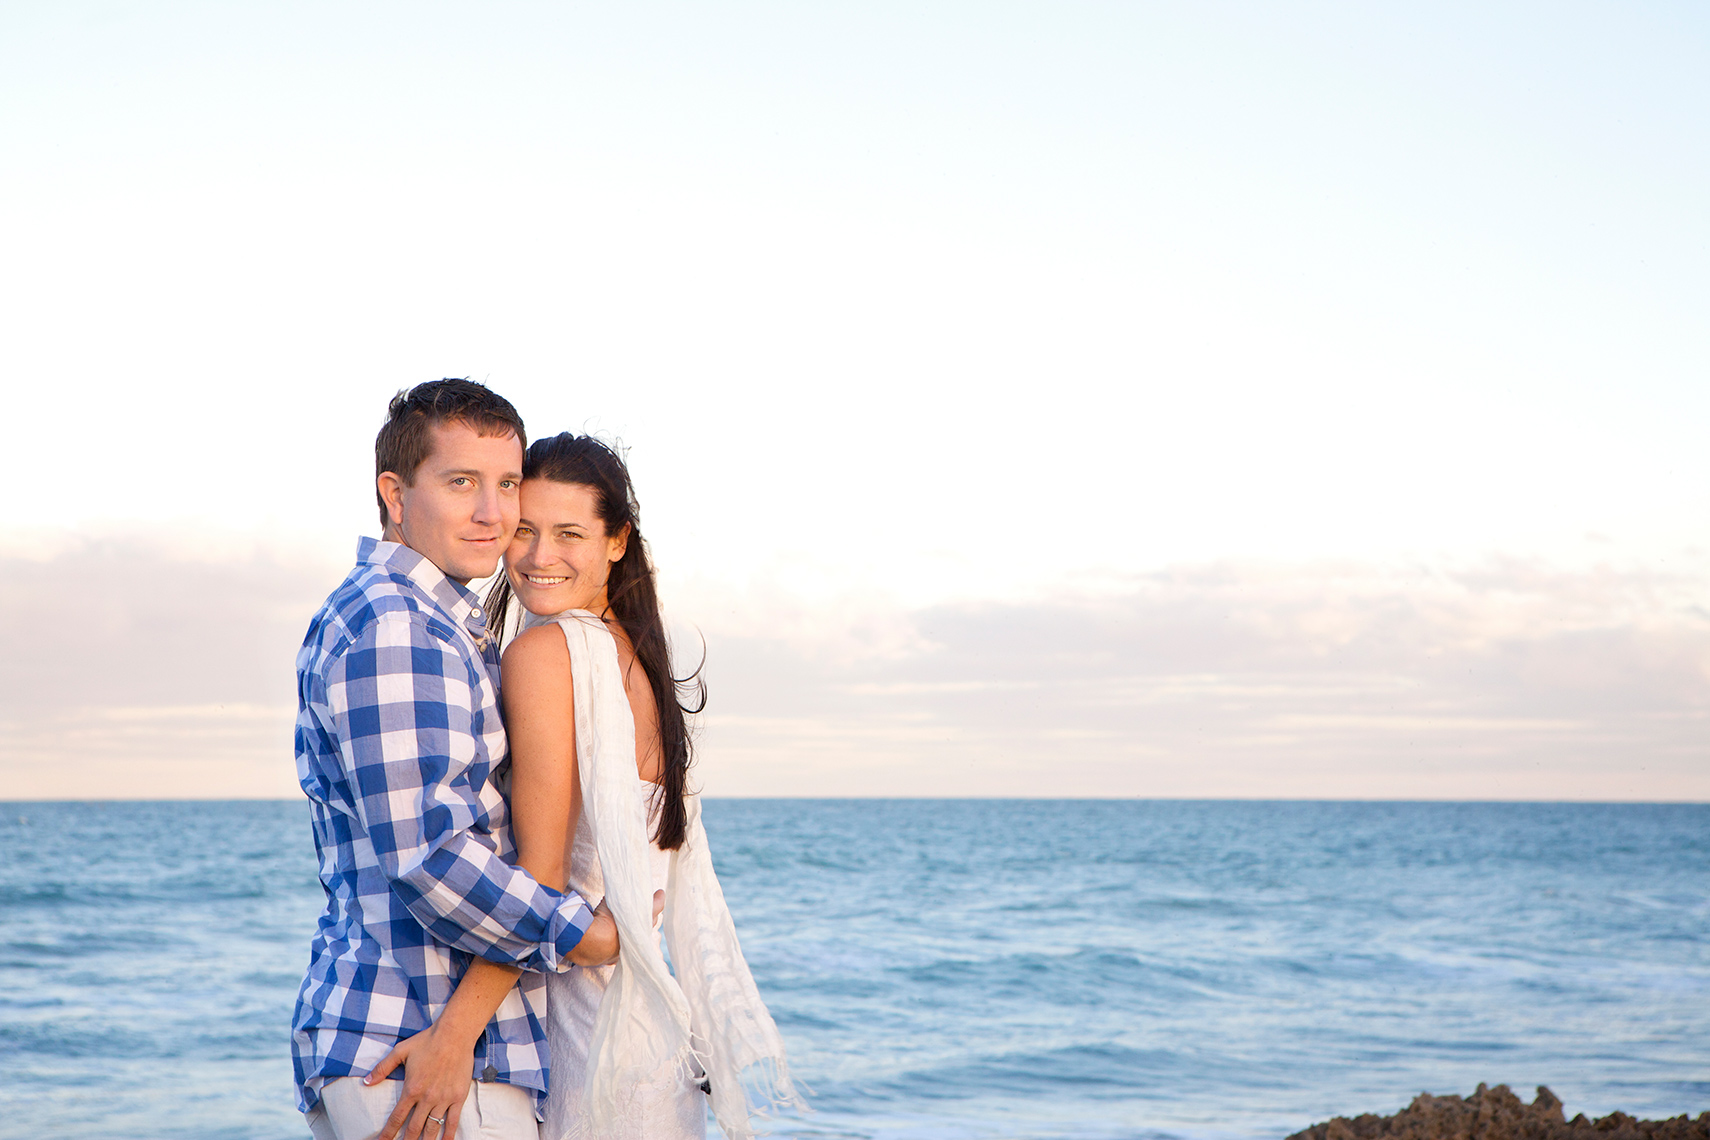 couple_engagement_photography_beach_MG_0238_Robert_Holland_Big_Fish_Studios